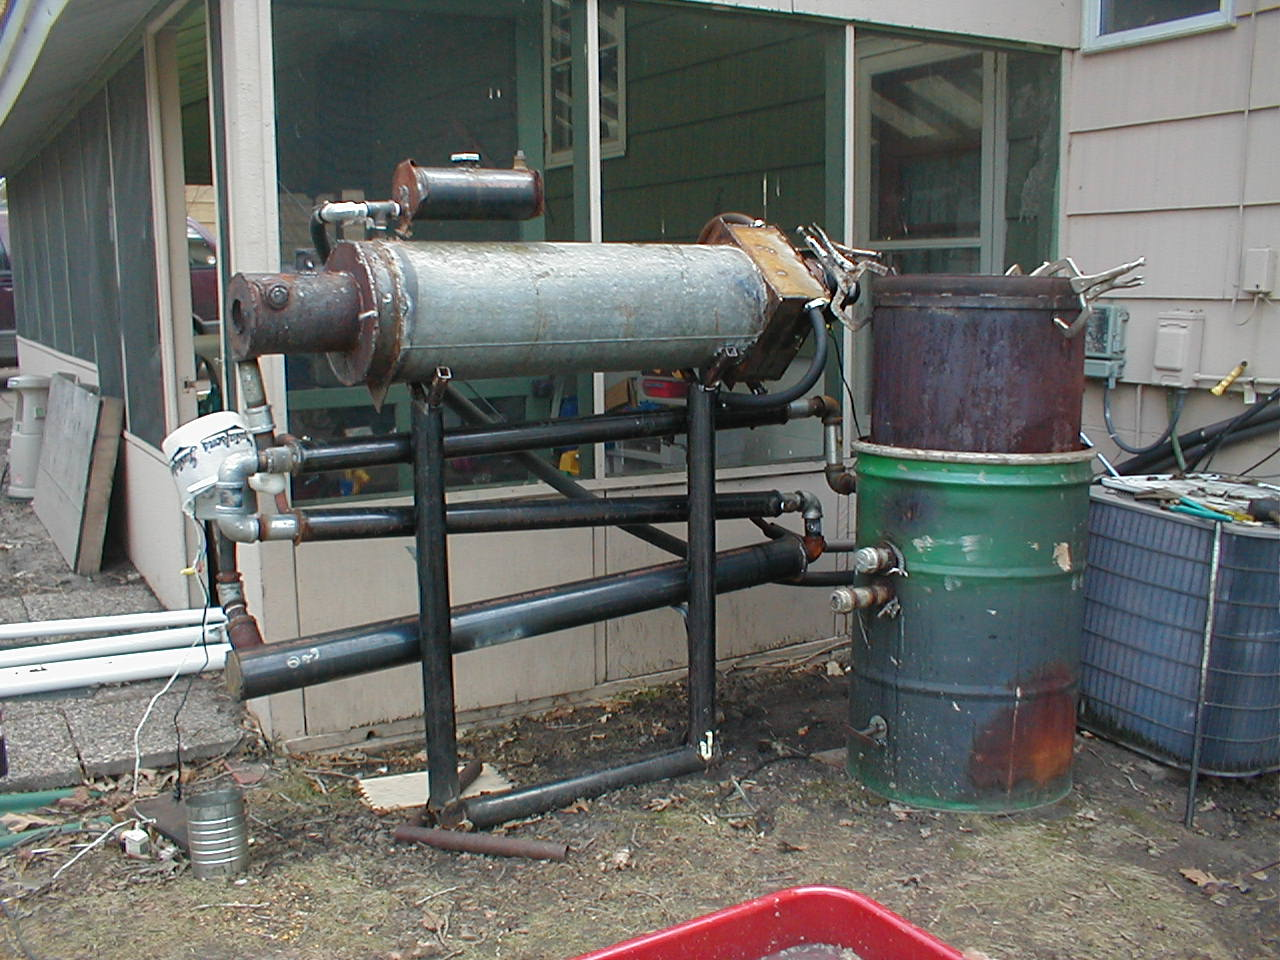 The gasifier is on the right side